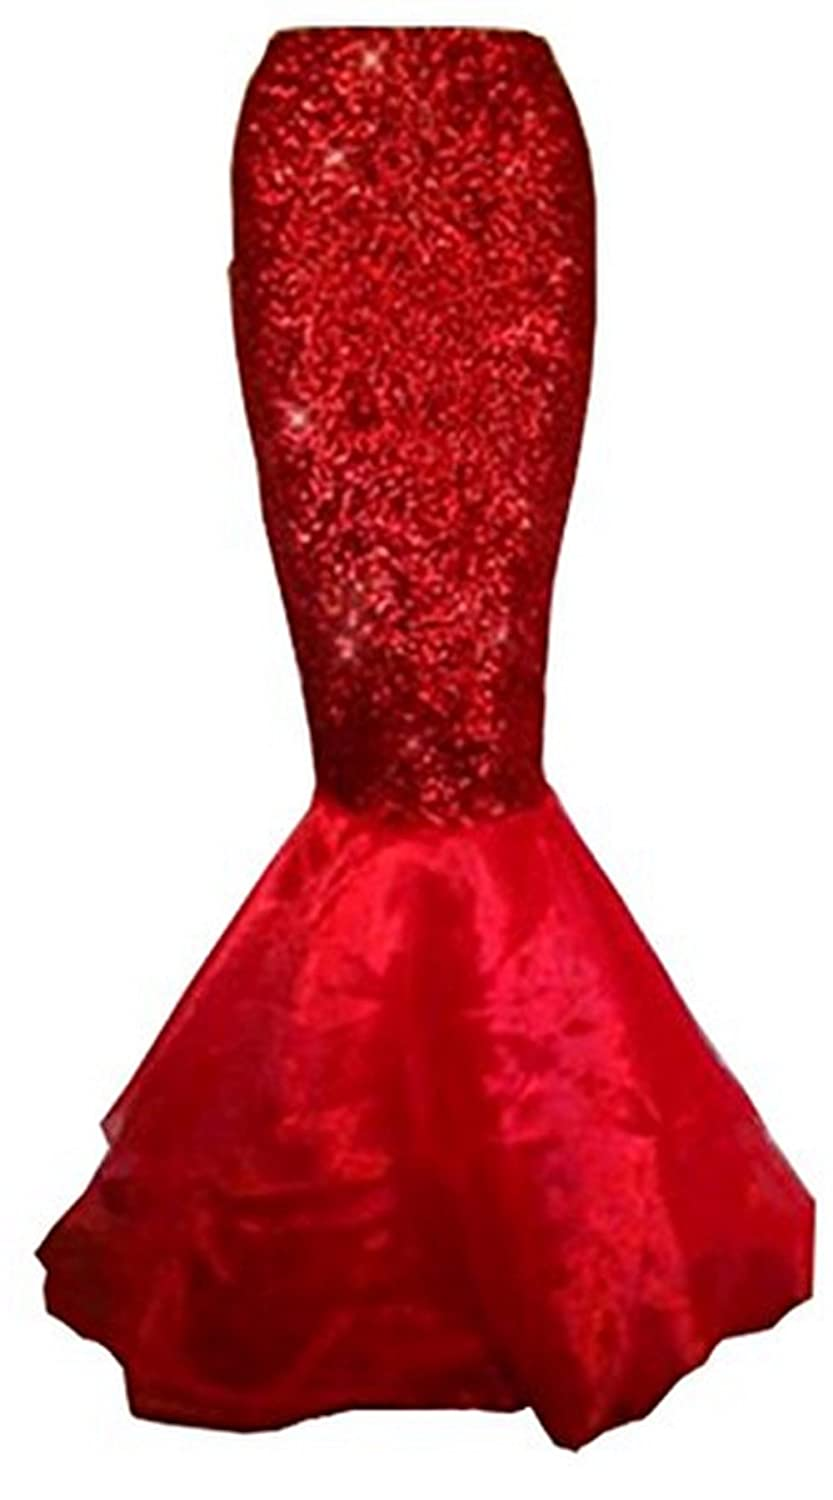 Women's Red Sequins Asymmetric Mesh Panel Mermaid Costume Skirt - DeluxeAdultCostumes.com